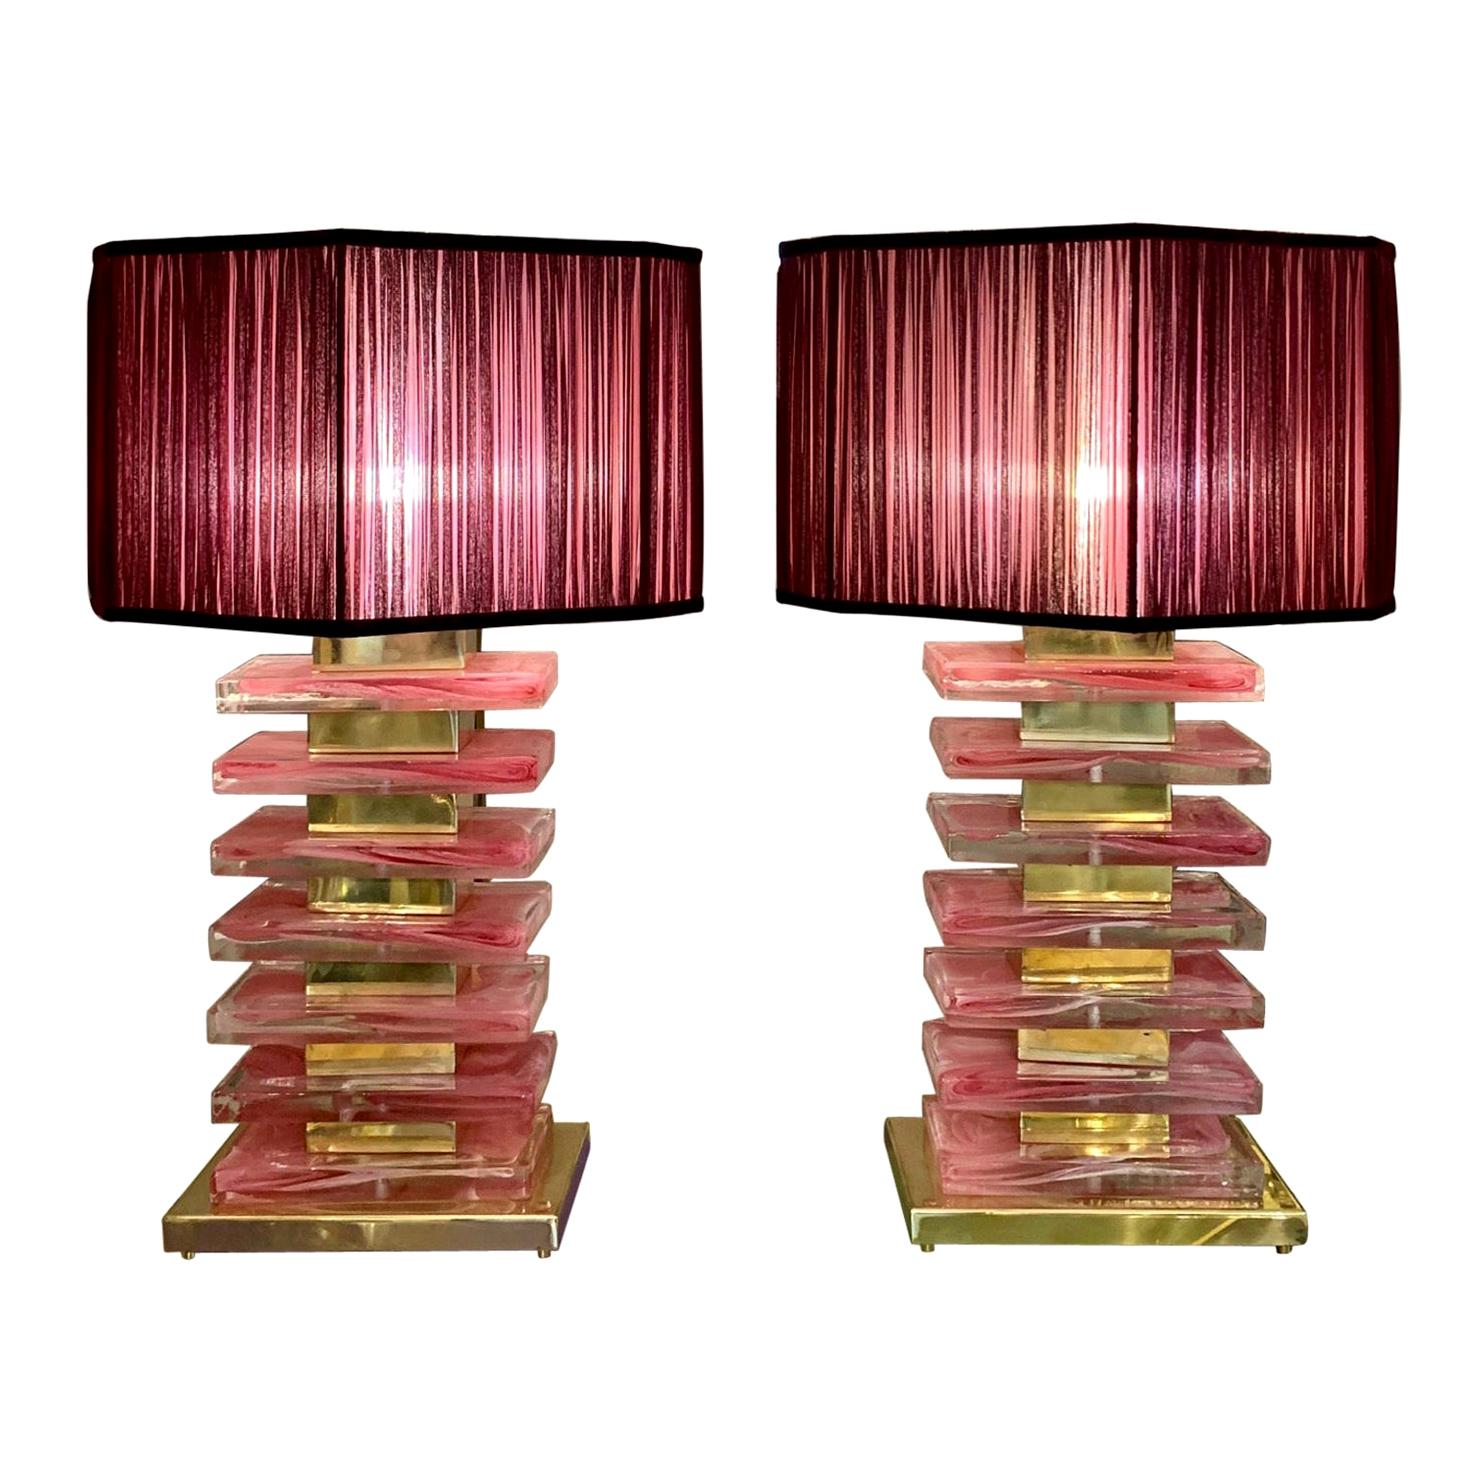 Pair of Pink Murano Glass Blocks Lamps and Our Handcrafted Lampshades, 1970s